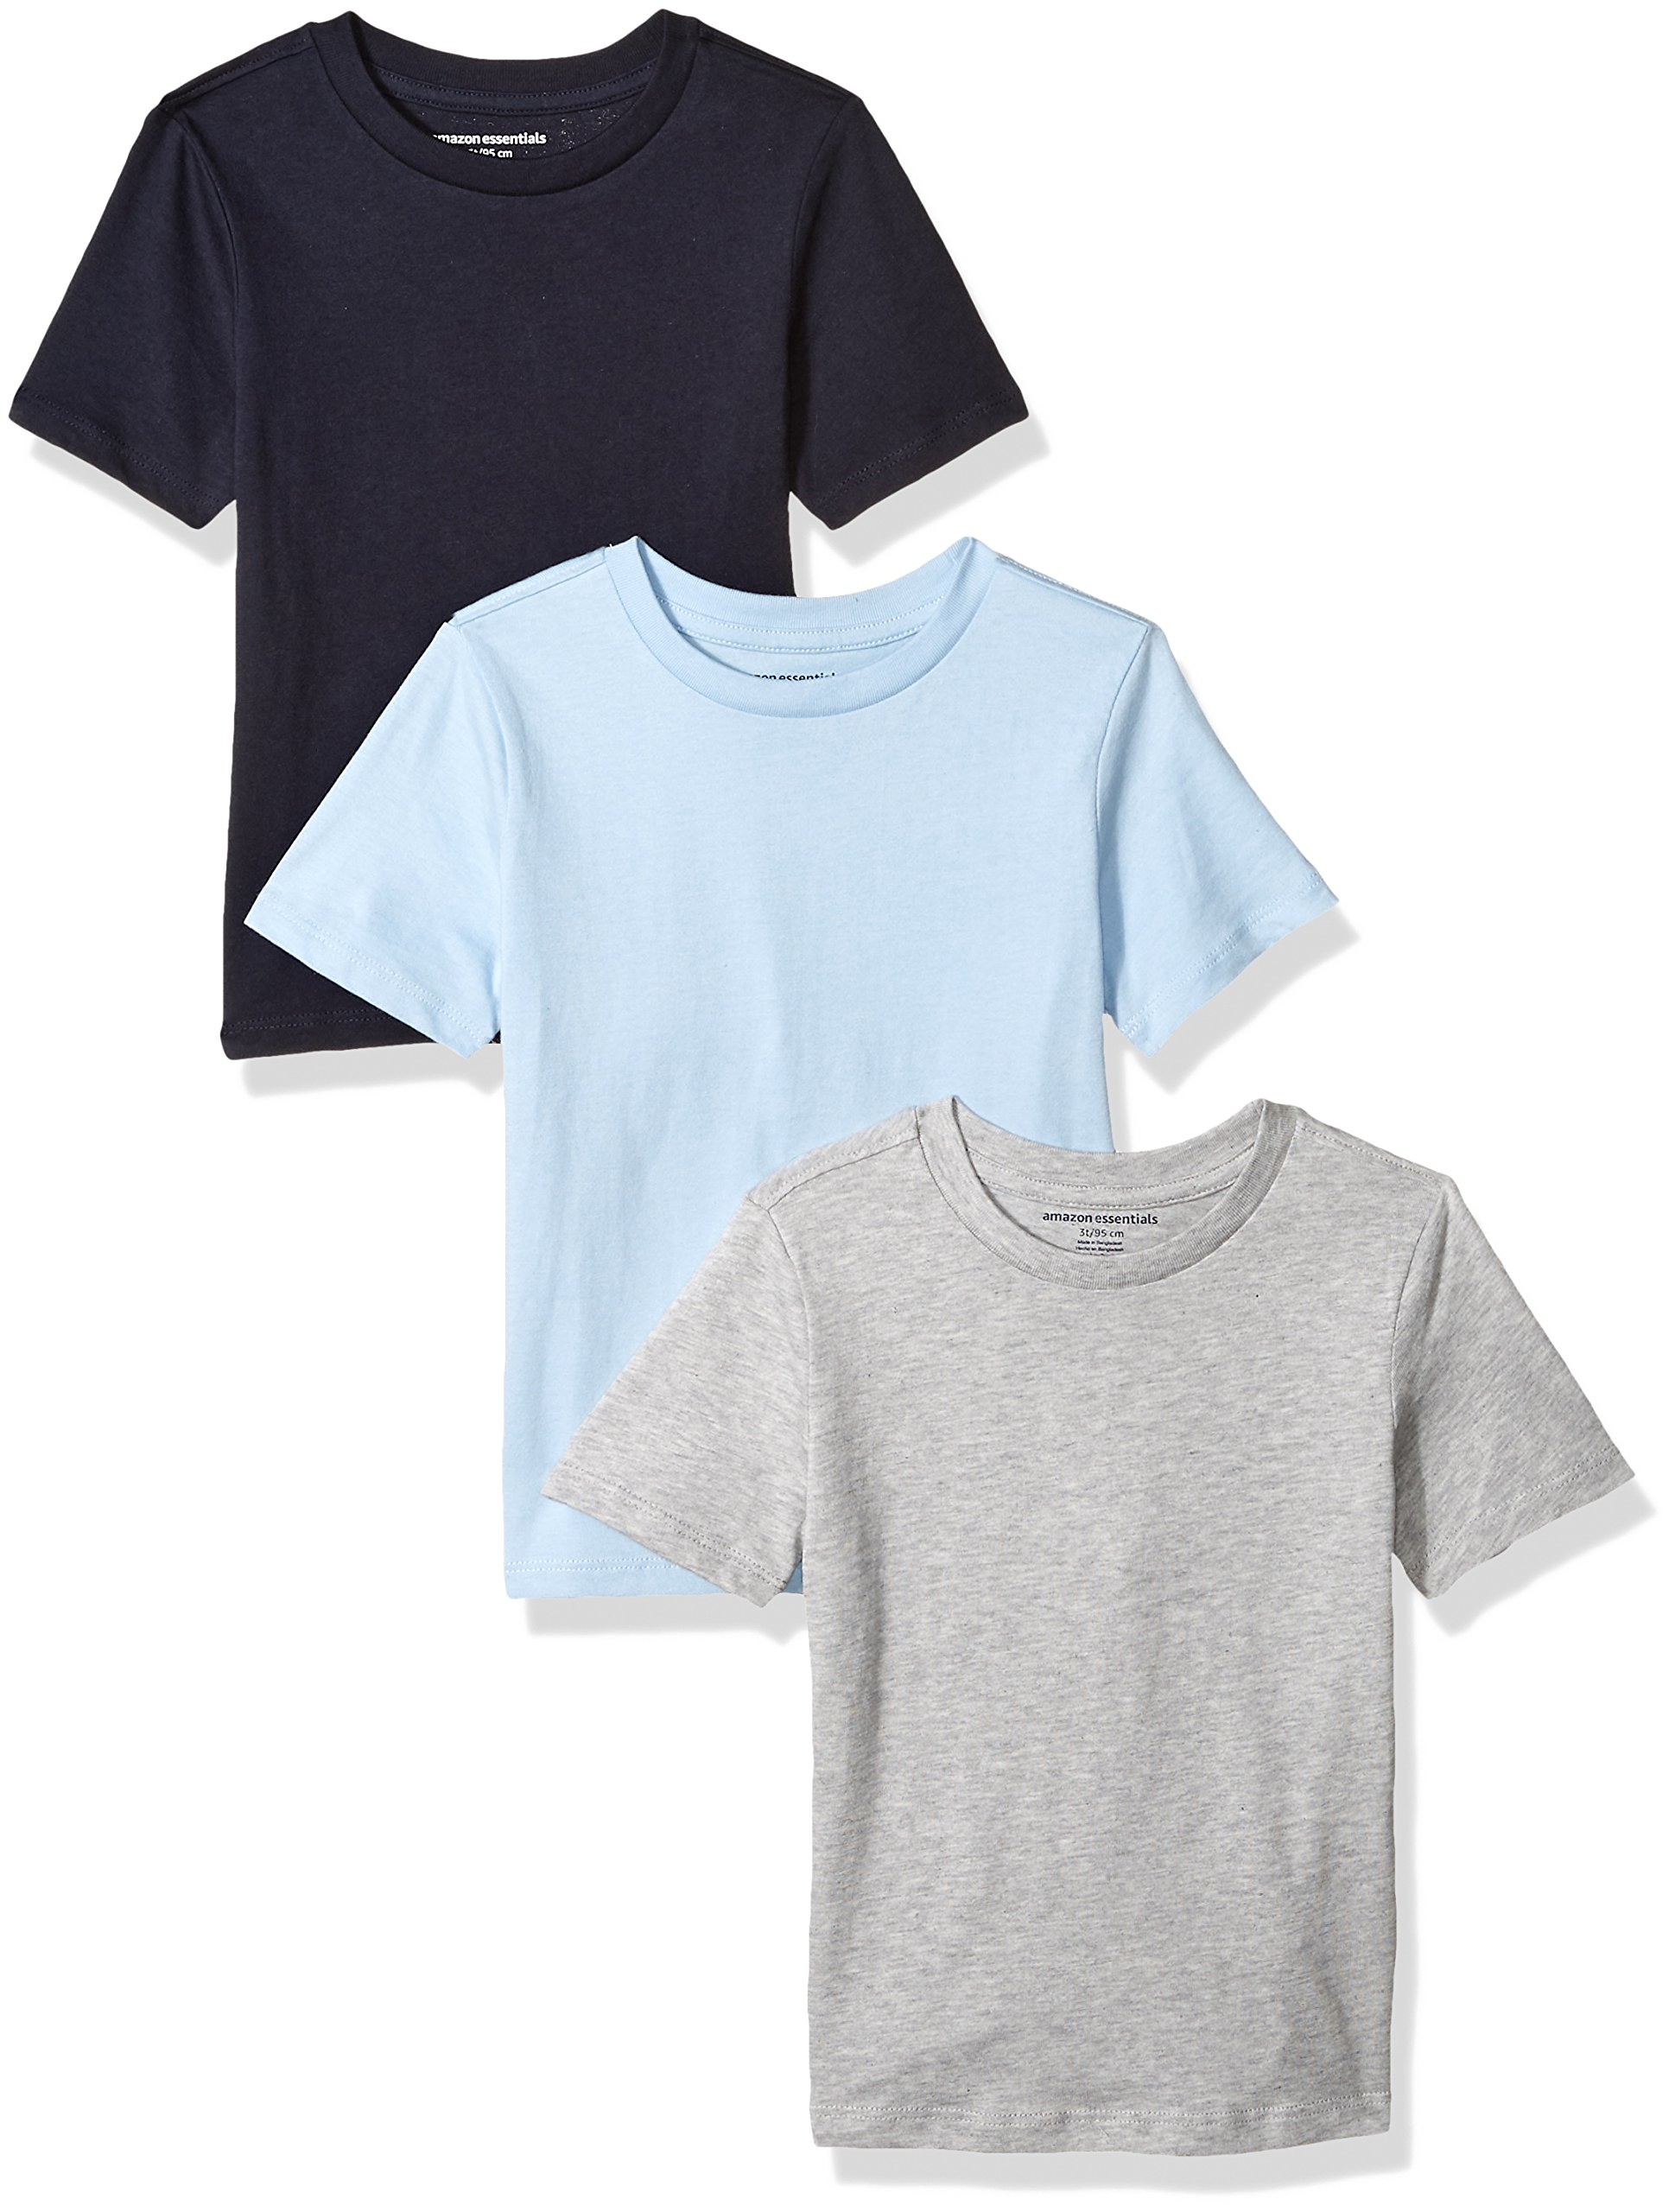 Amazon Essentials Toddler Boys' 3-Pack Short Sleeve Tee, Light Blue/Heather Grey/Navy, 2T